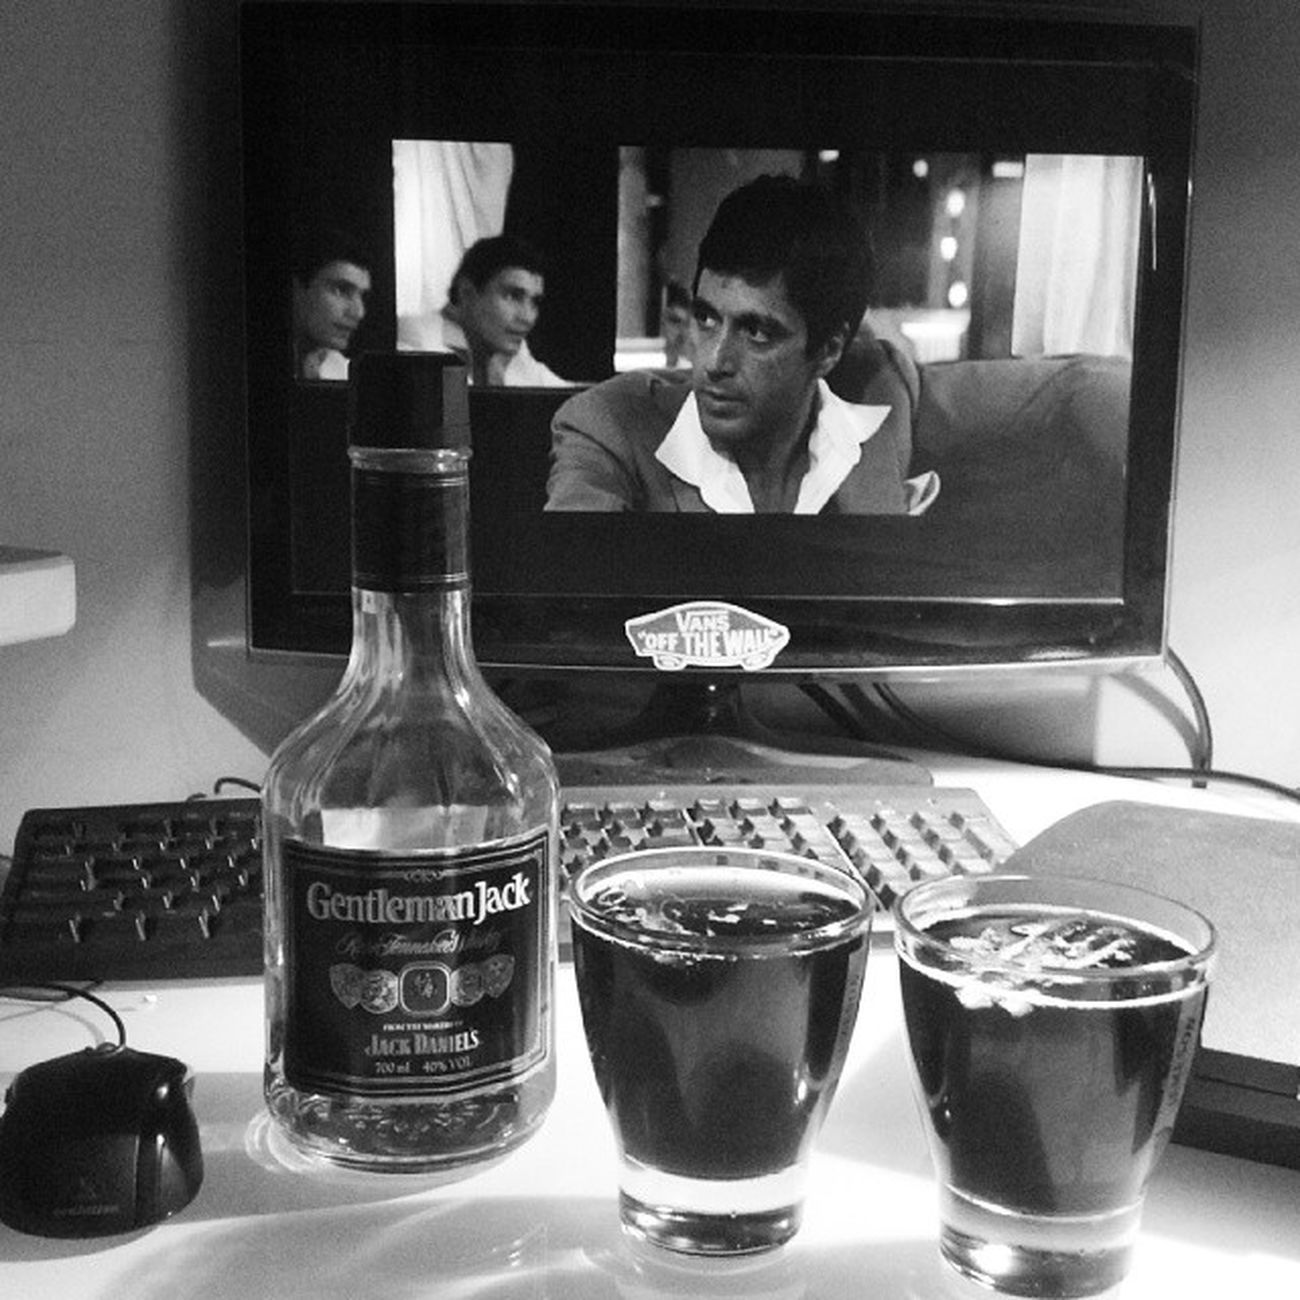 Drink with Tony! TonyMontana Scarface Jackdaniels Gentlemanjack whiskey chill polishboy polishgirl instagood